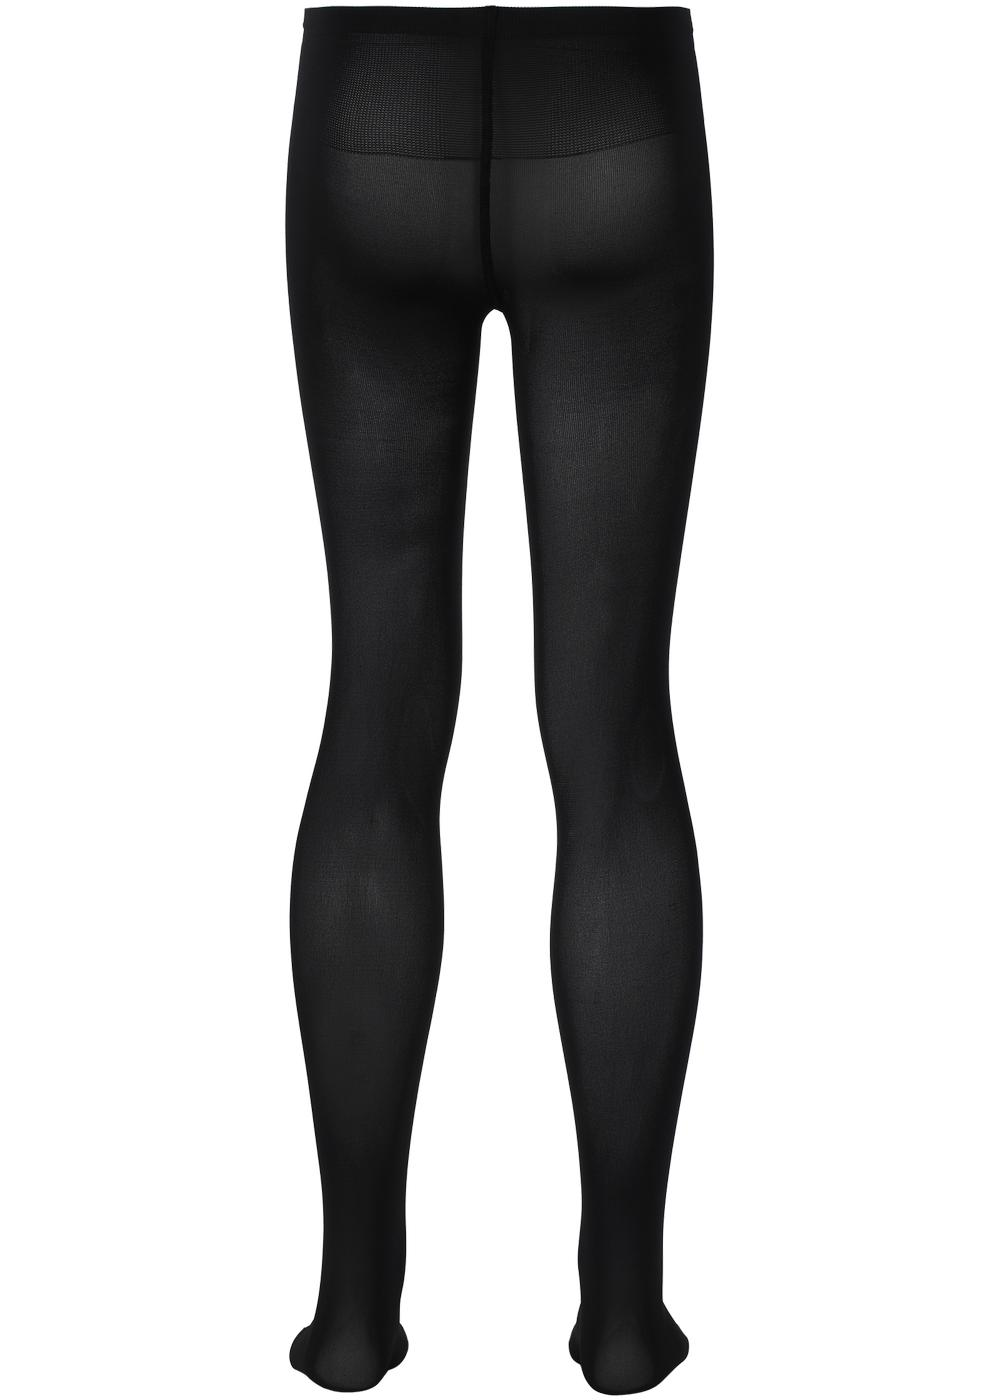 Girls' soft touch tights